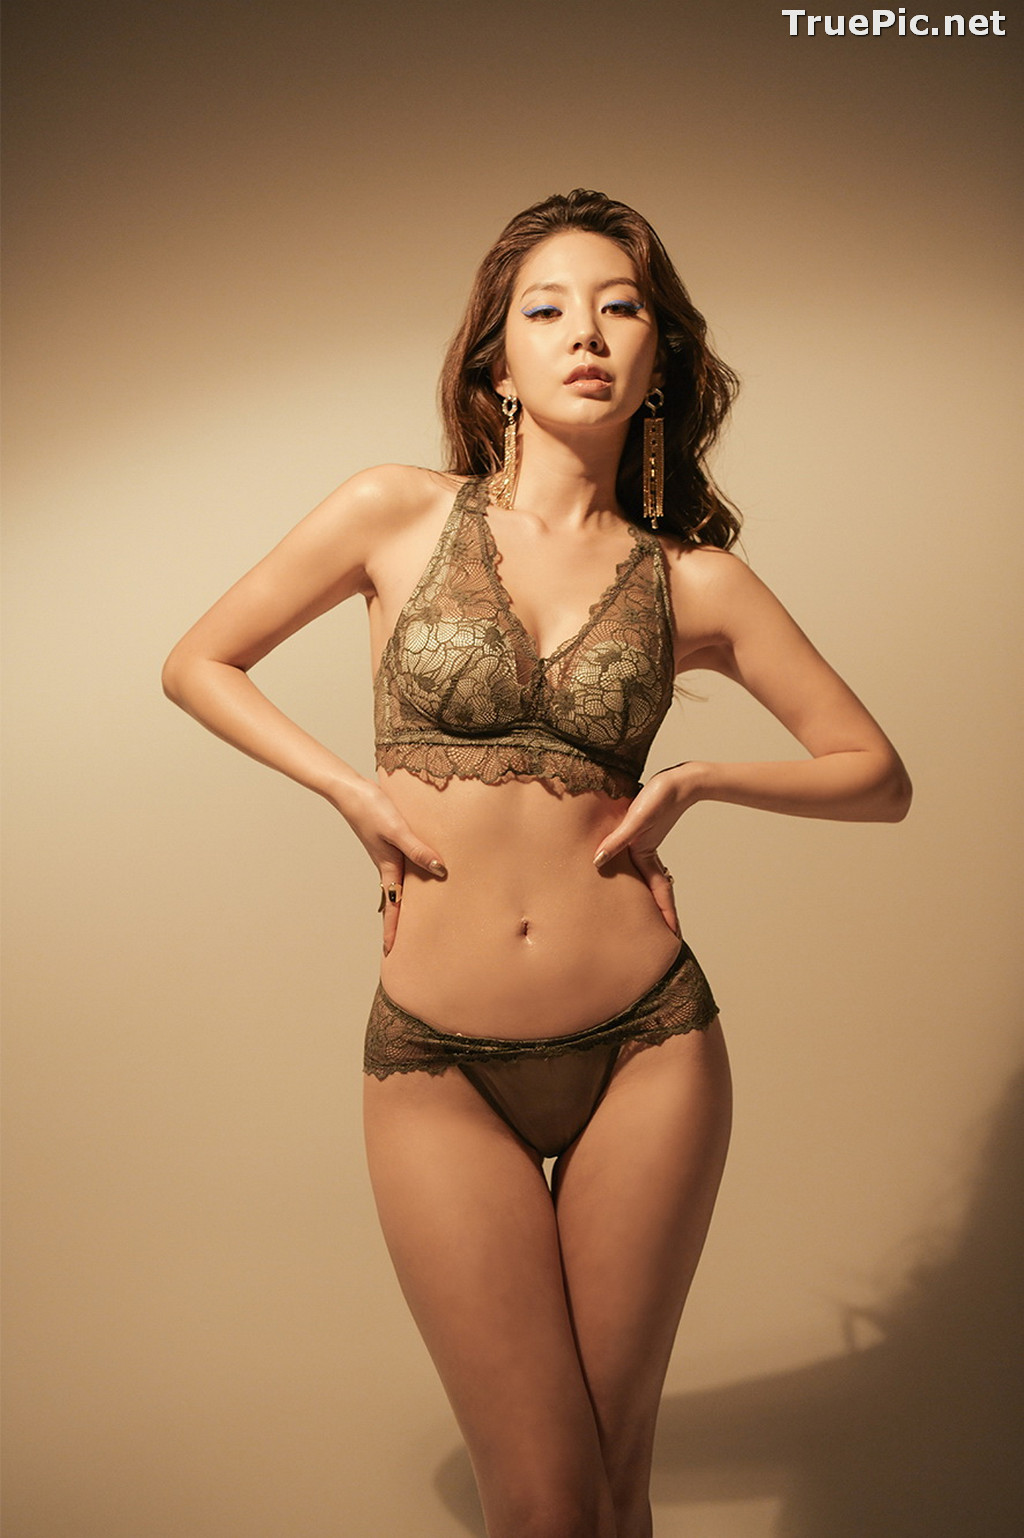 Image Korean Fashion Model - Lee Chae Eun - Soft Brown Lingerie - TruePic.net - Picture-2